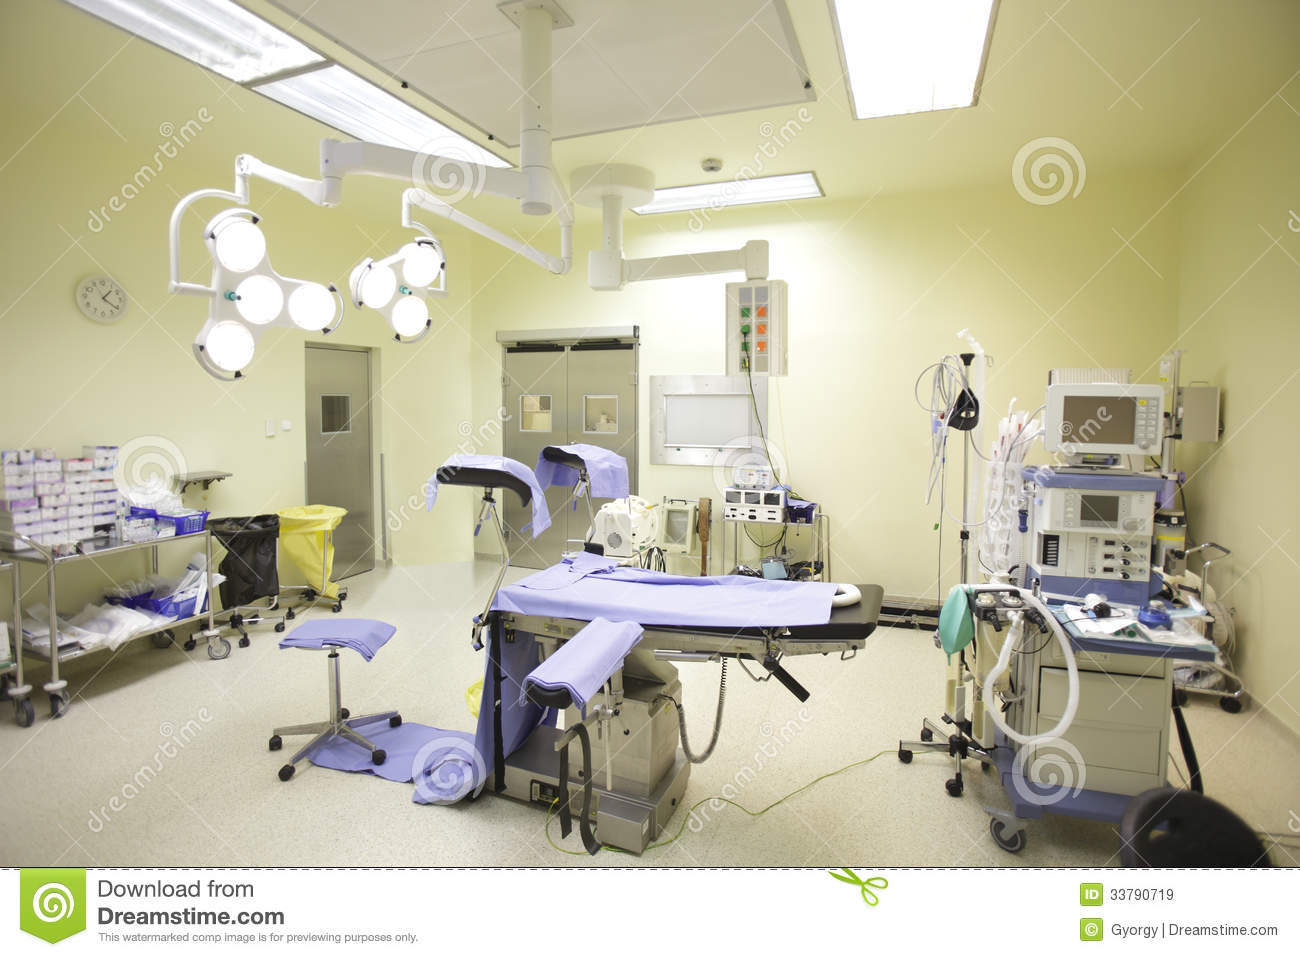 Hospital operating room - Operating Room Royalty Free Stock Images